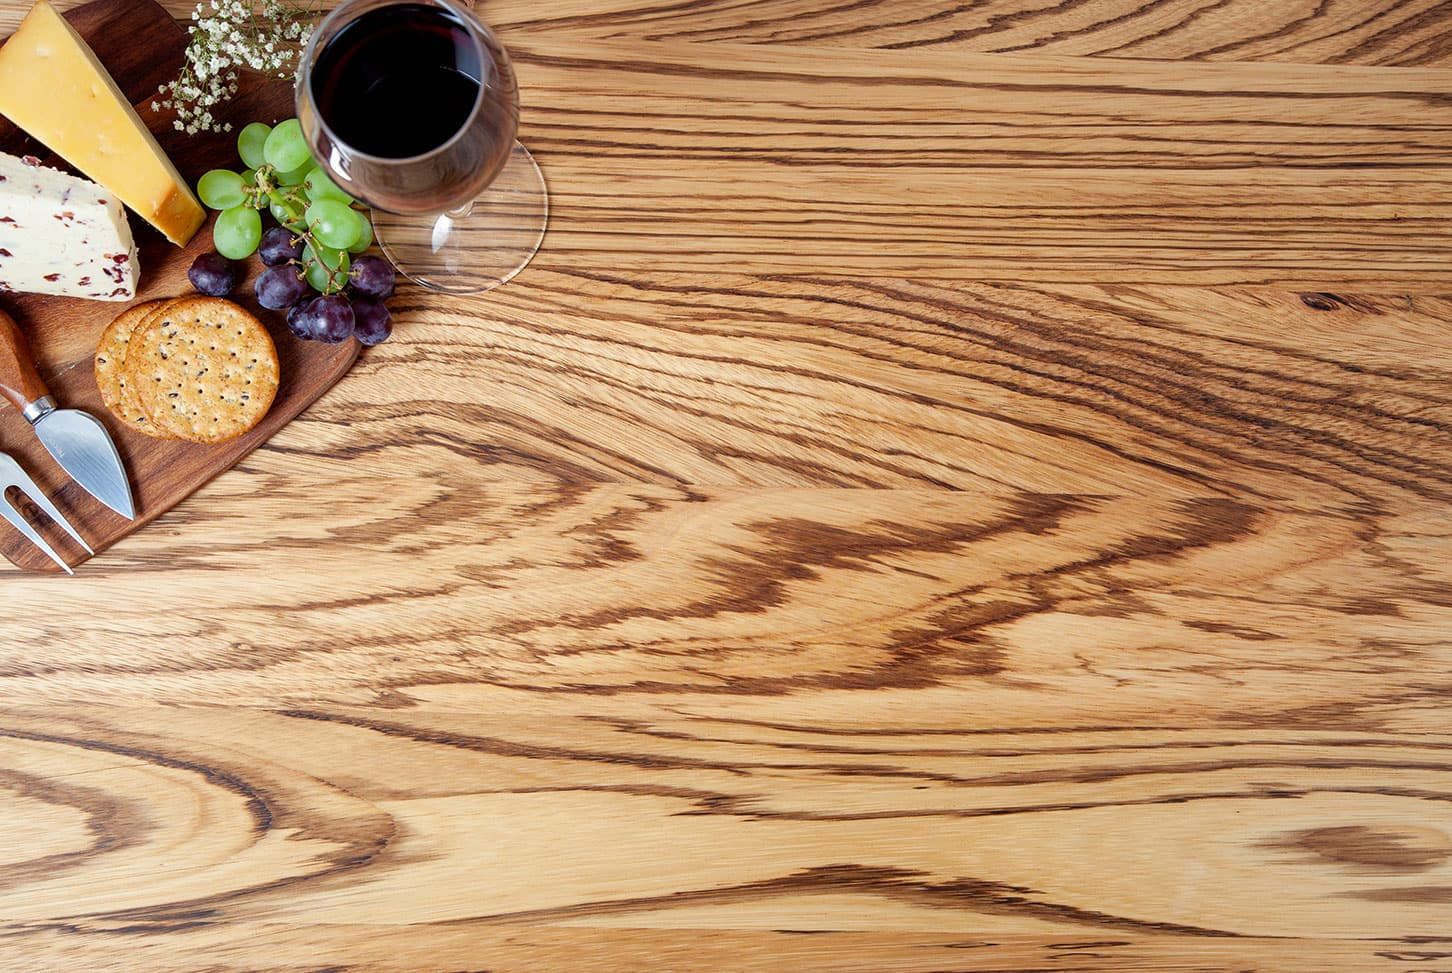 Go to our Zebrano Prime Oak Worktop gallery page